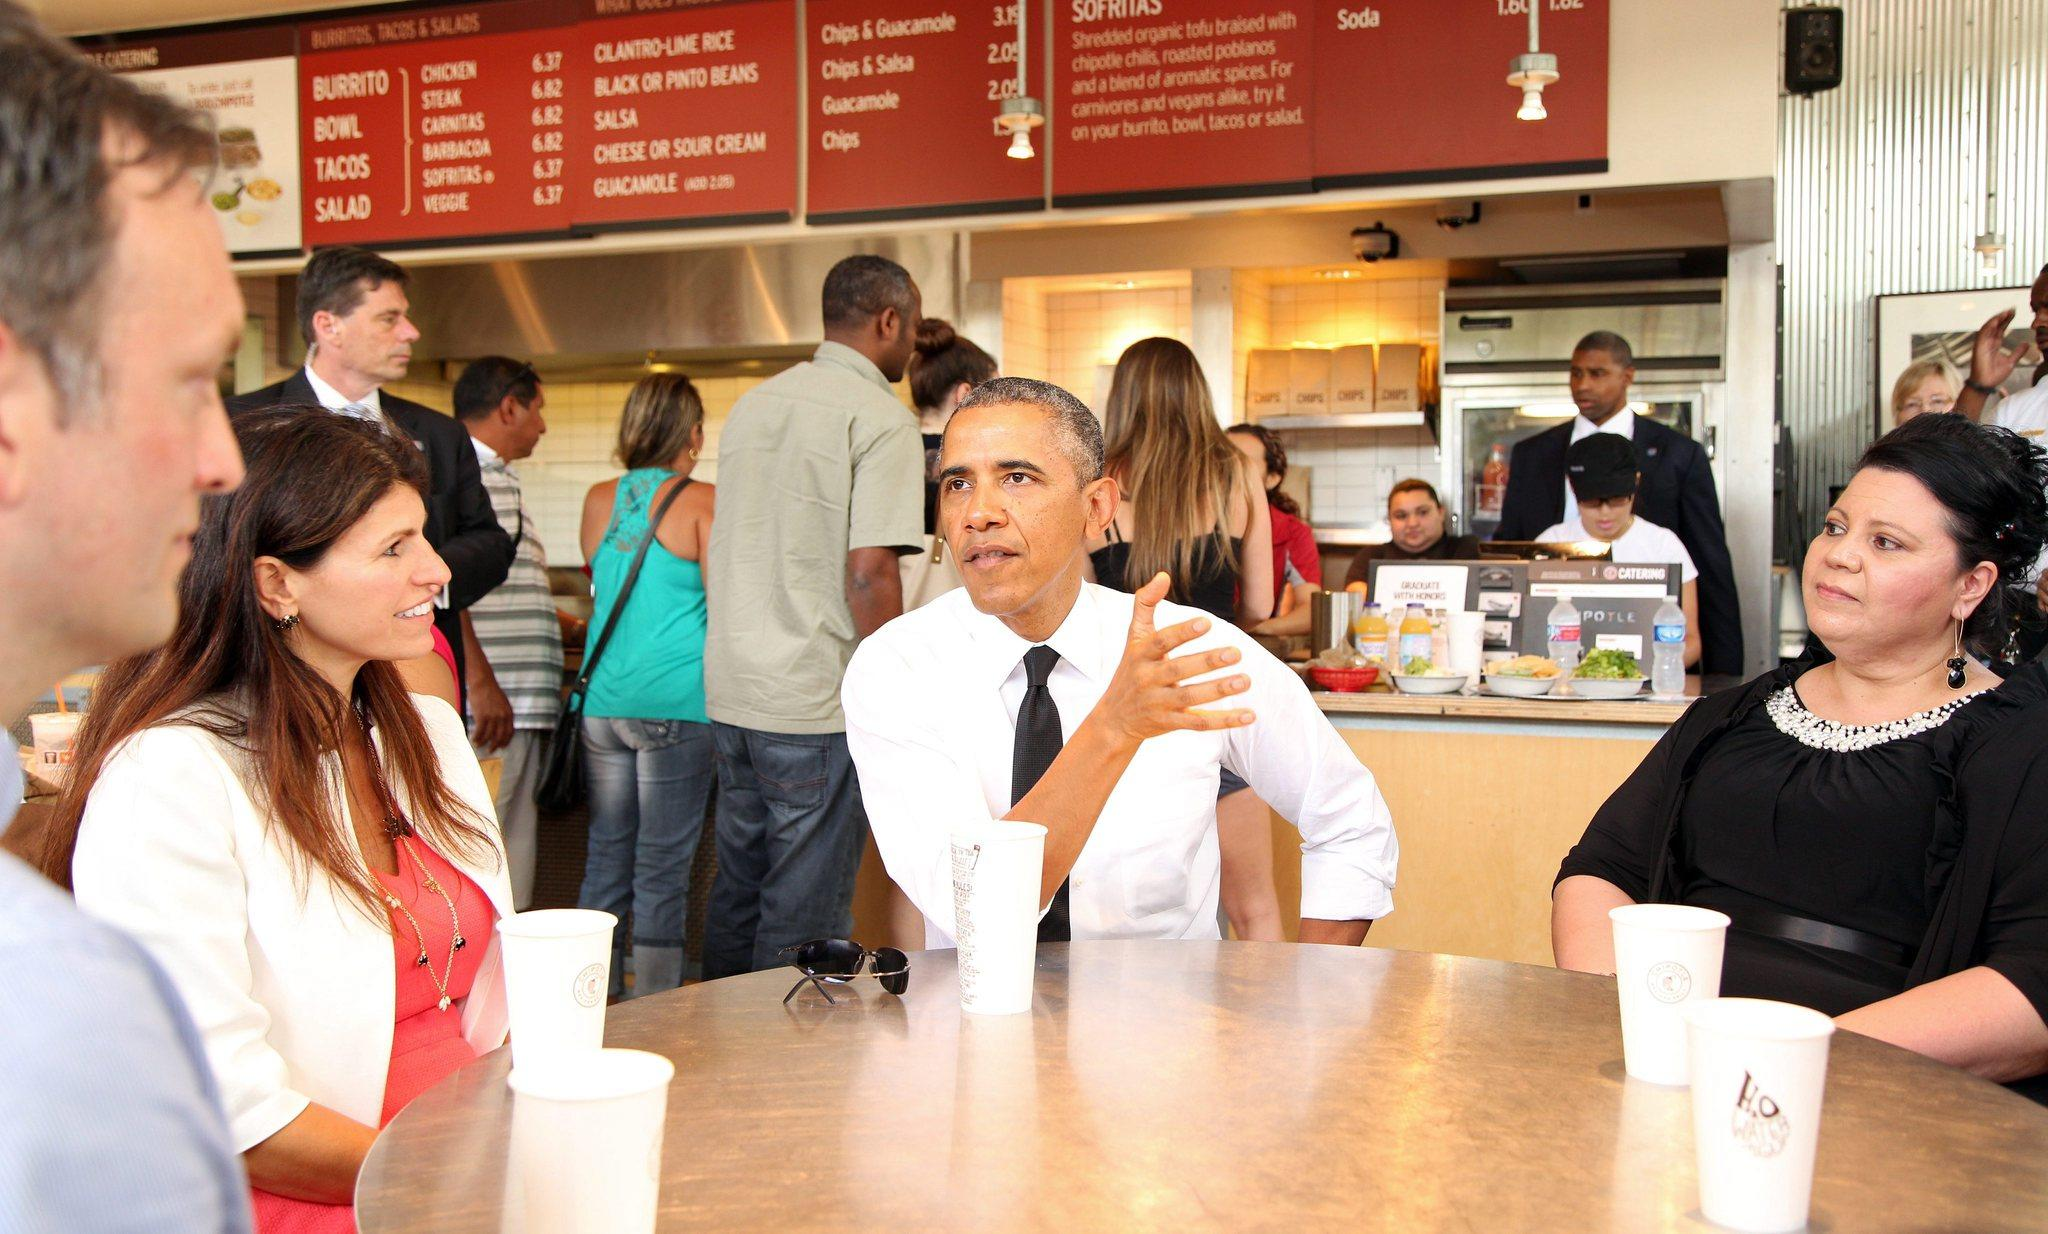 President Barack Obama joins several working parents for lunch at a nearby Chipotle restaurant prior to speaking at the first White House Summit on Working Families, in Washington, D.C. The first-ever White House Summit on Working Families was held to discuss flexible workplace policies beneficial to working parents and employers.